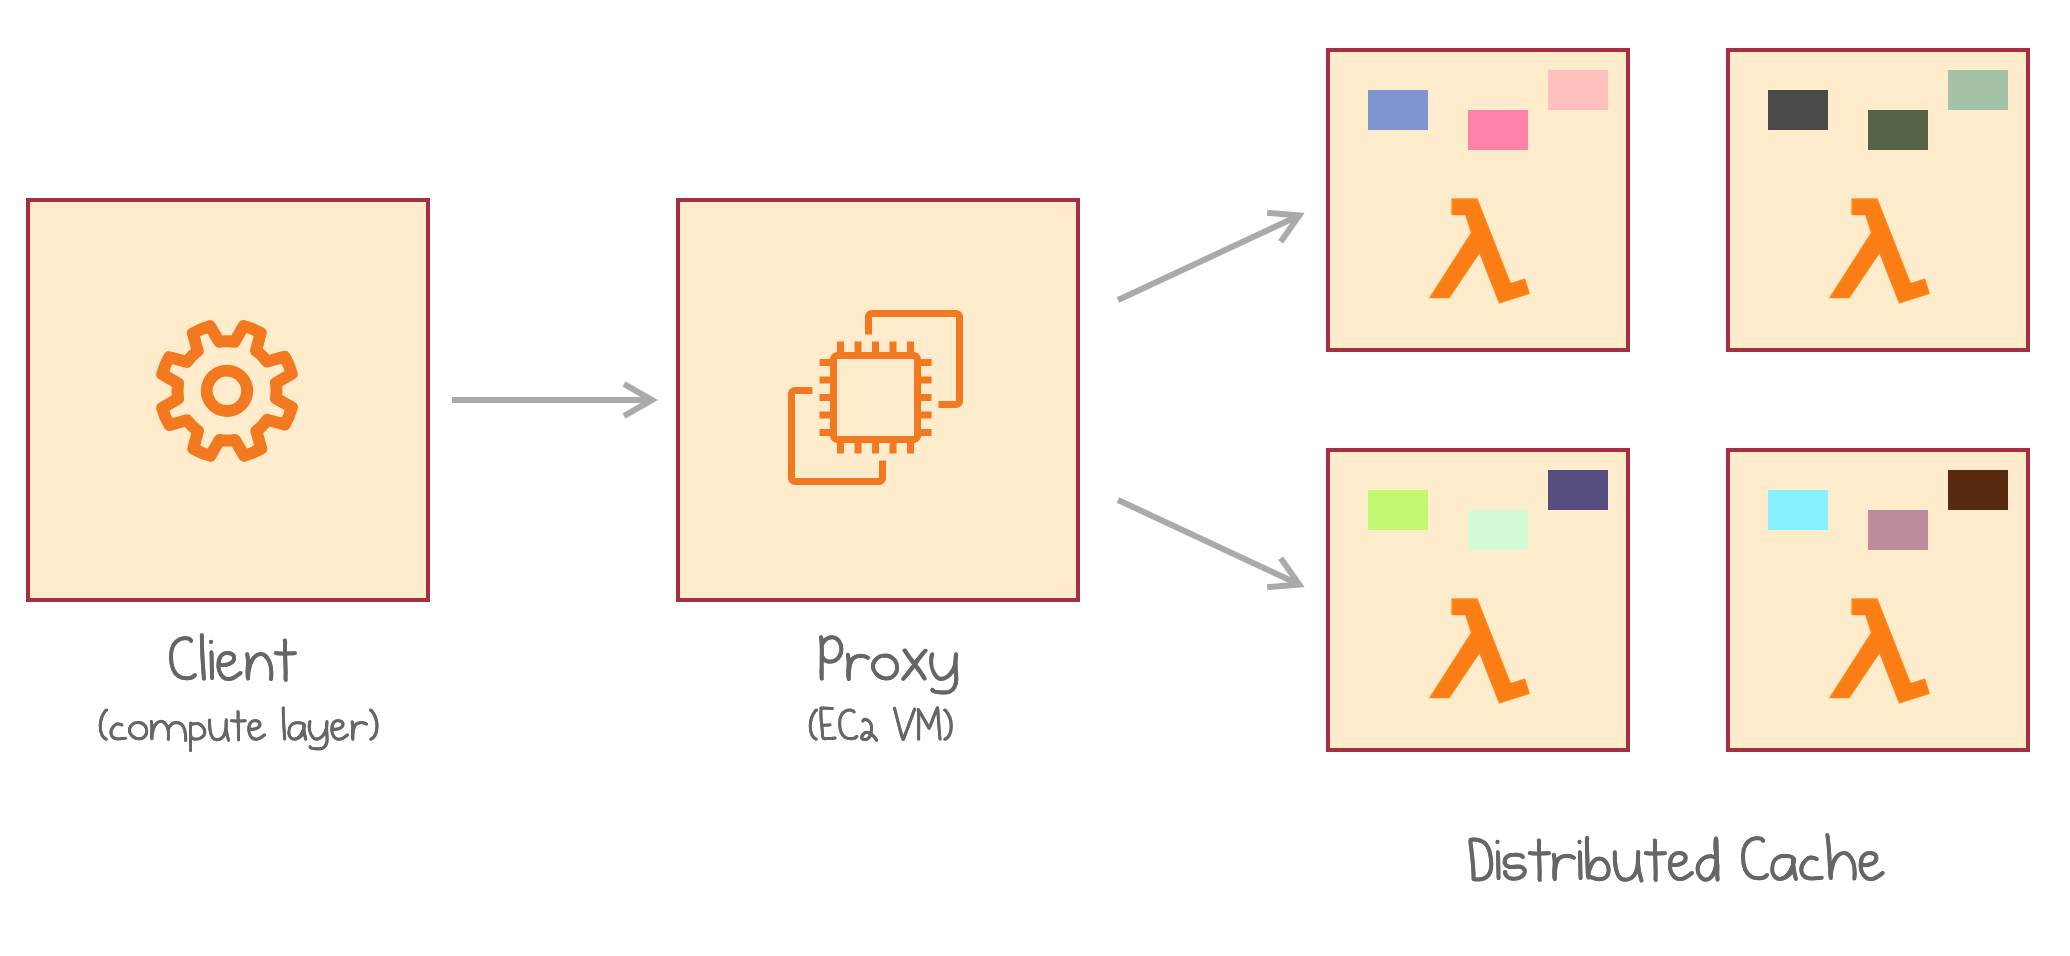 A client makes requests to the proxy which connects to a Lambda